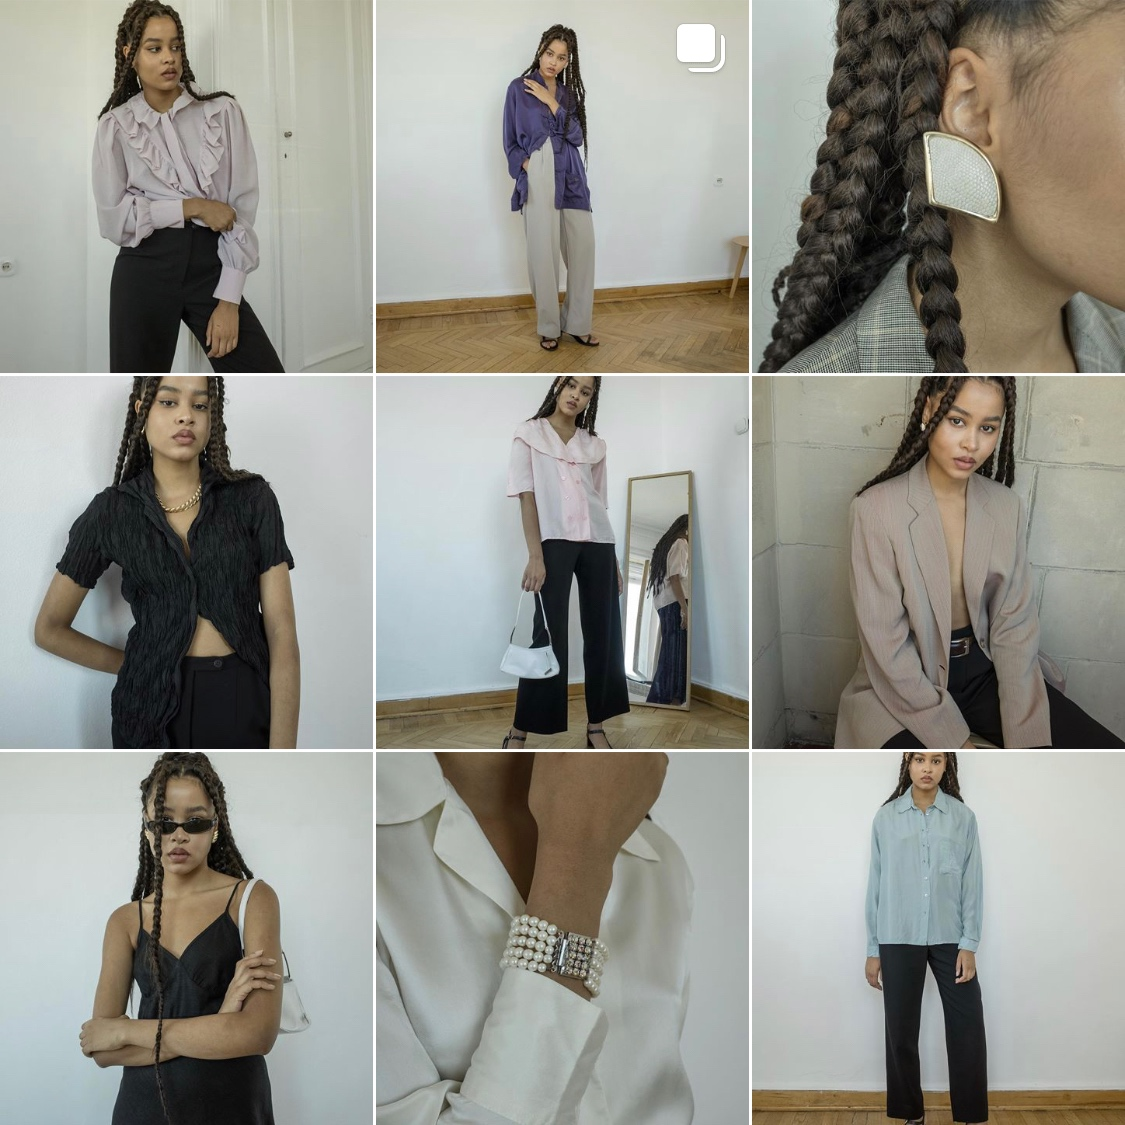 total vintage - I see quite a few followers of mine already follow this Moscow based vintage shop. No wonder - they ship online and offer 10% off first purchase. Total Vintage is also right where I used to live. I start getting a bit FOMO here!